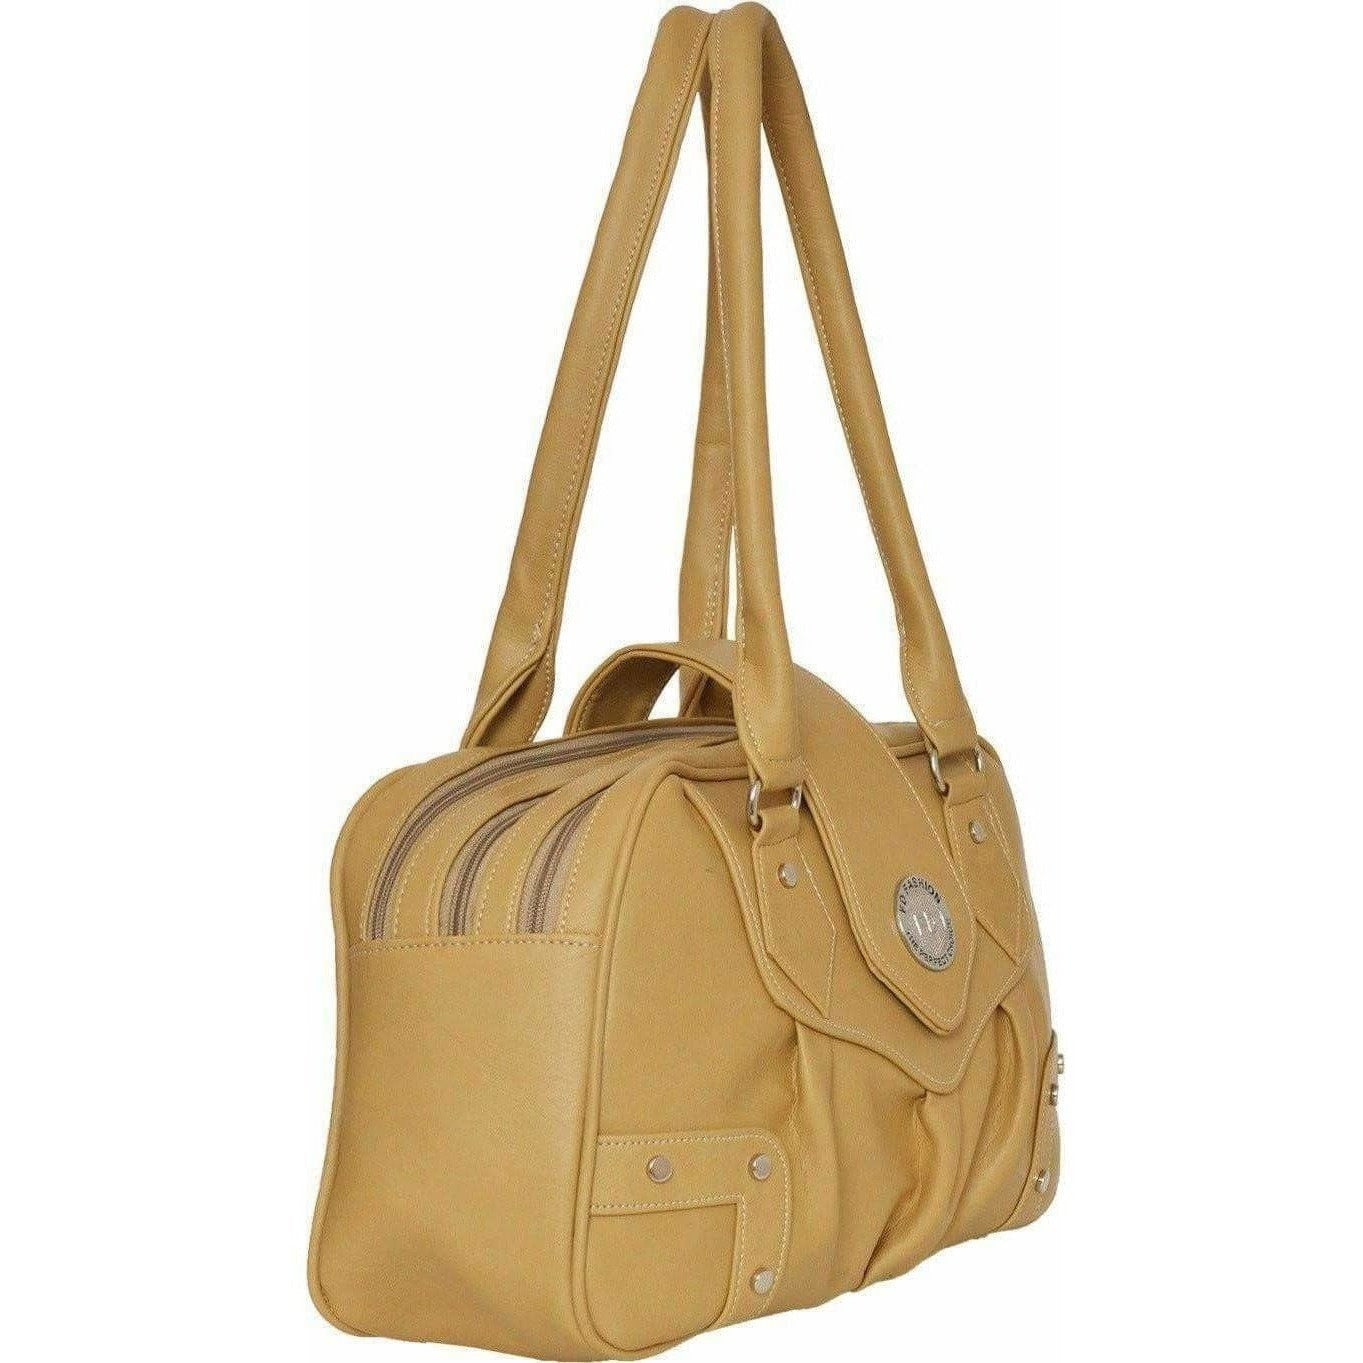 Beige Women Shoulder Bag  - Dista Cart